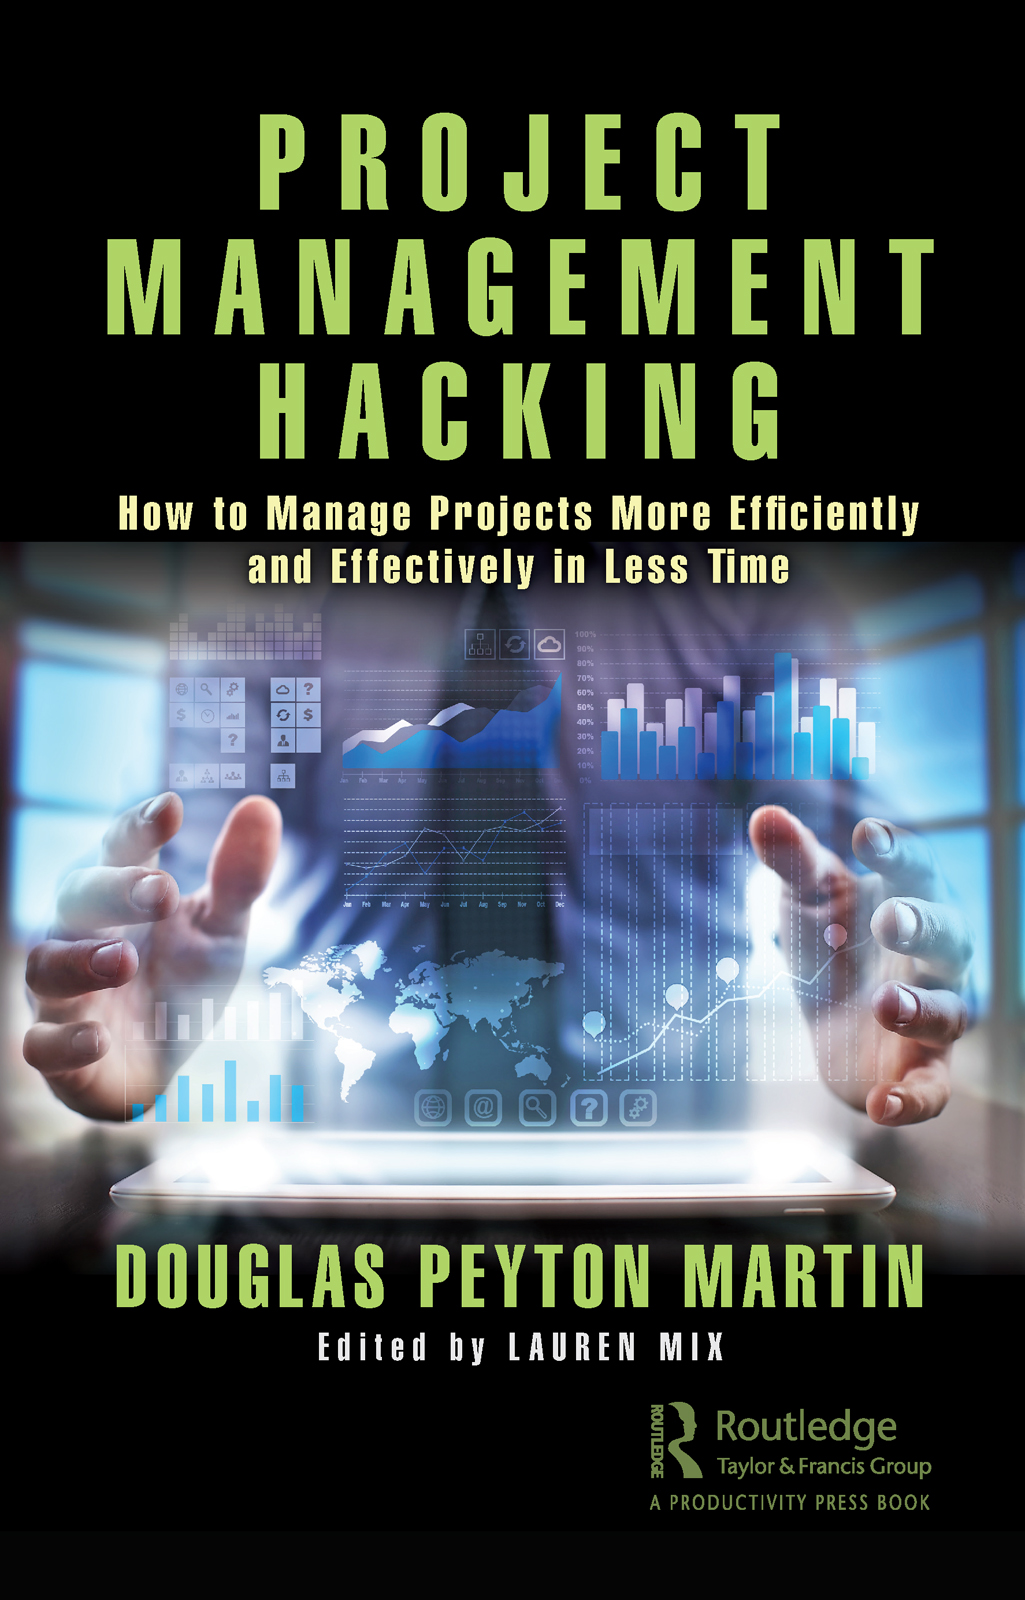 Project Management Hacking: How to Manage Projects More Efficiently and Effectively in Less Time book cover